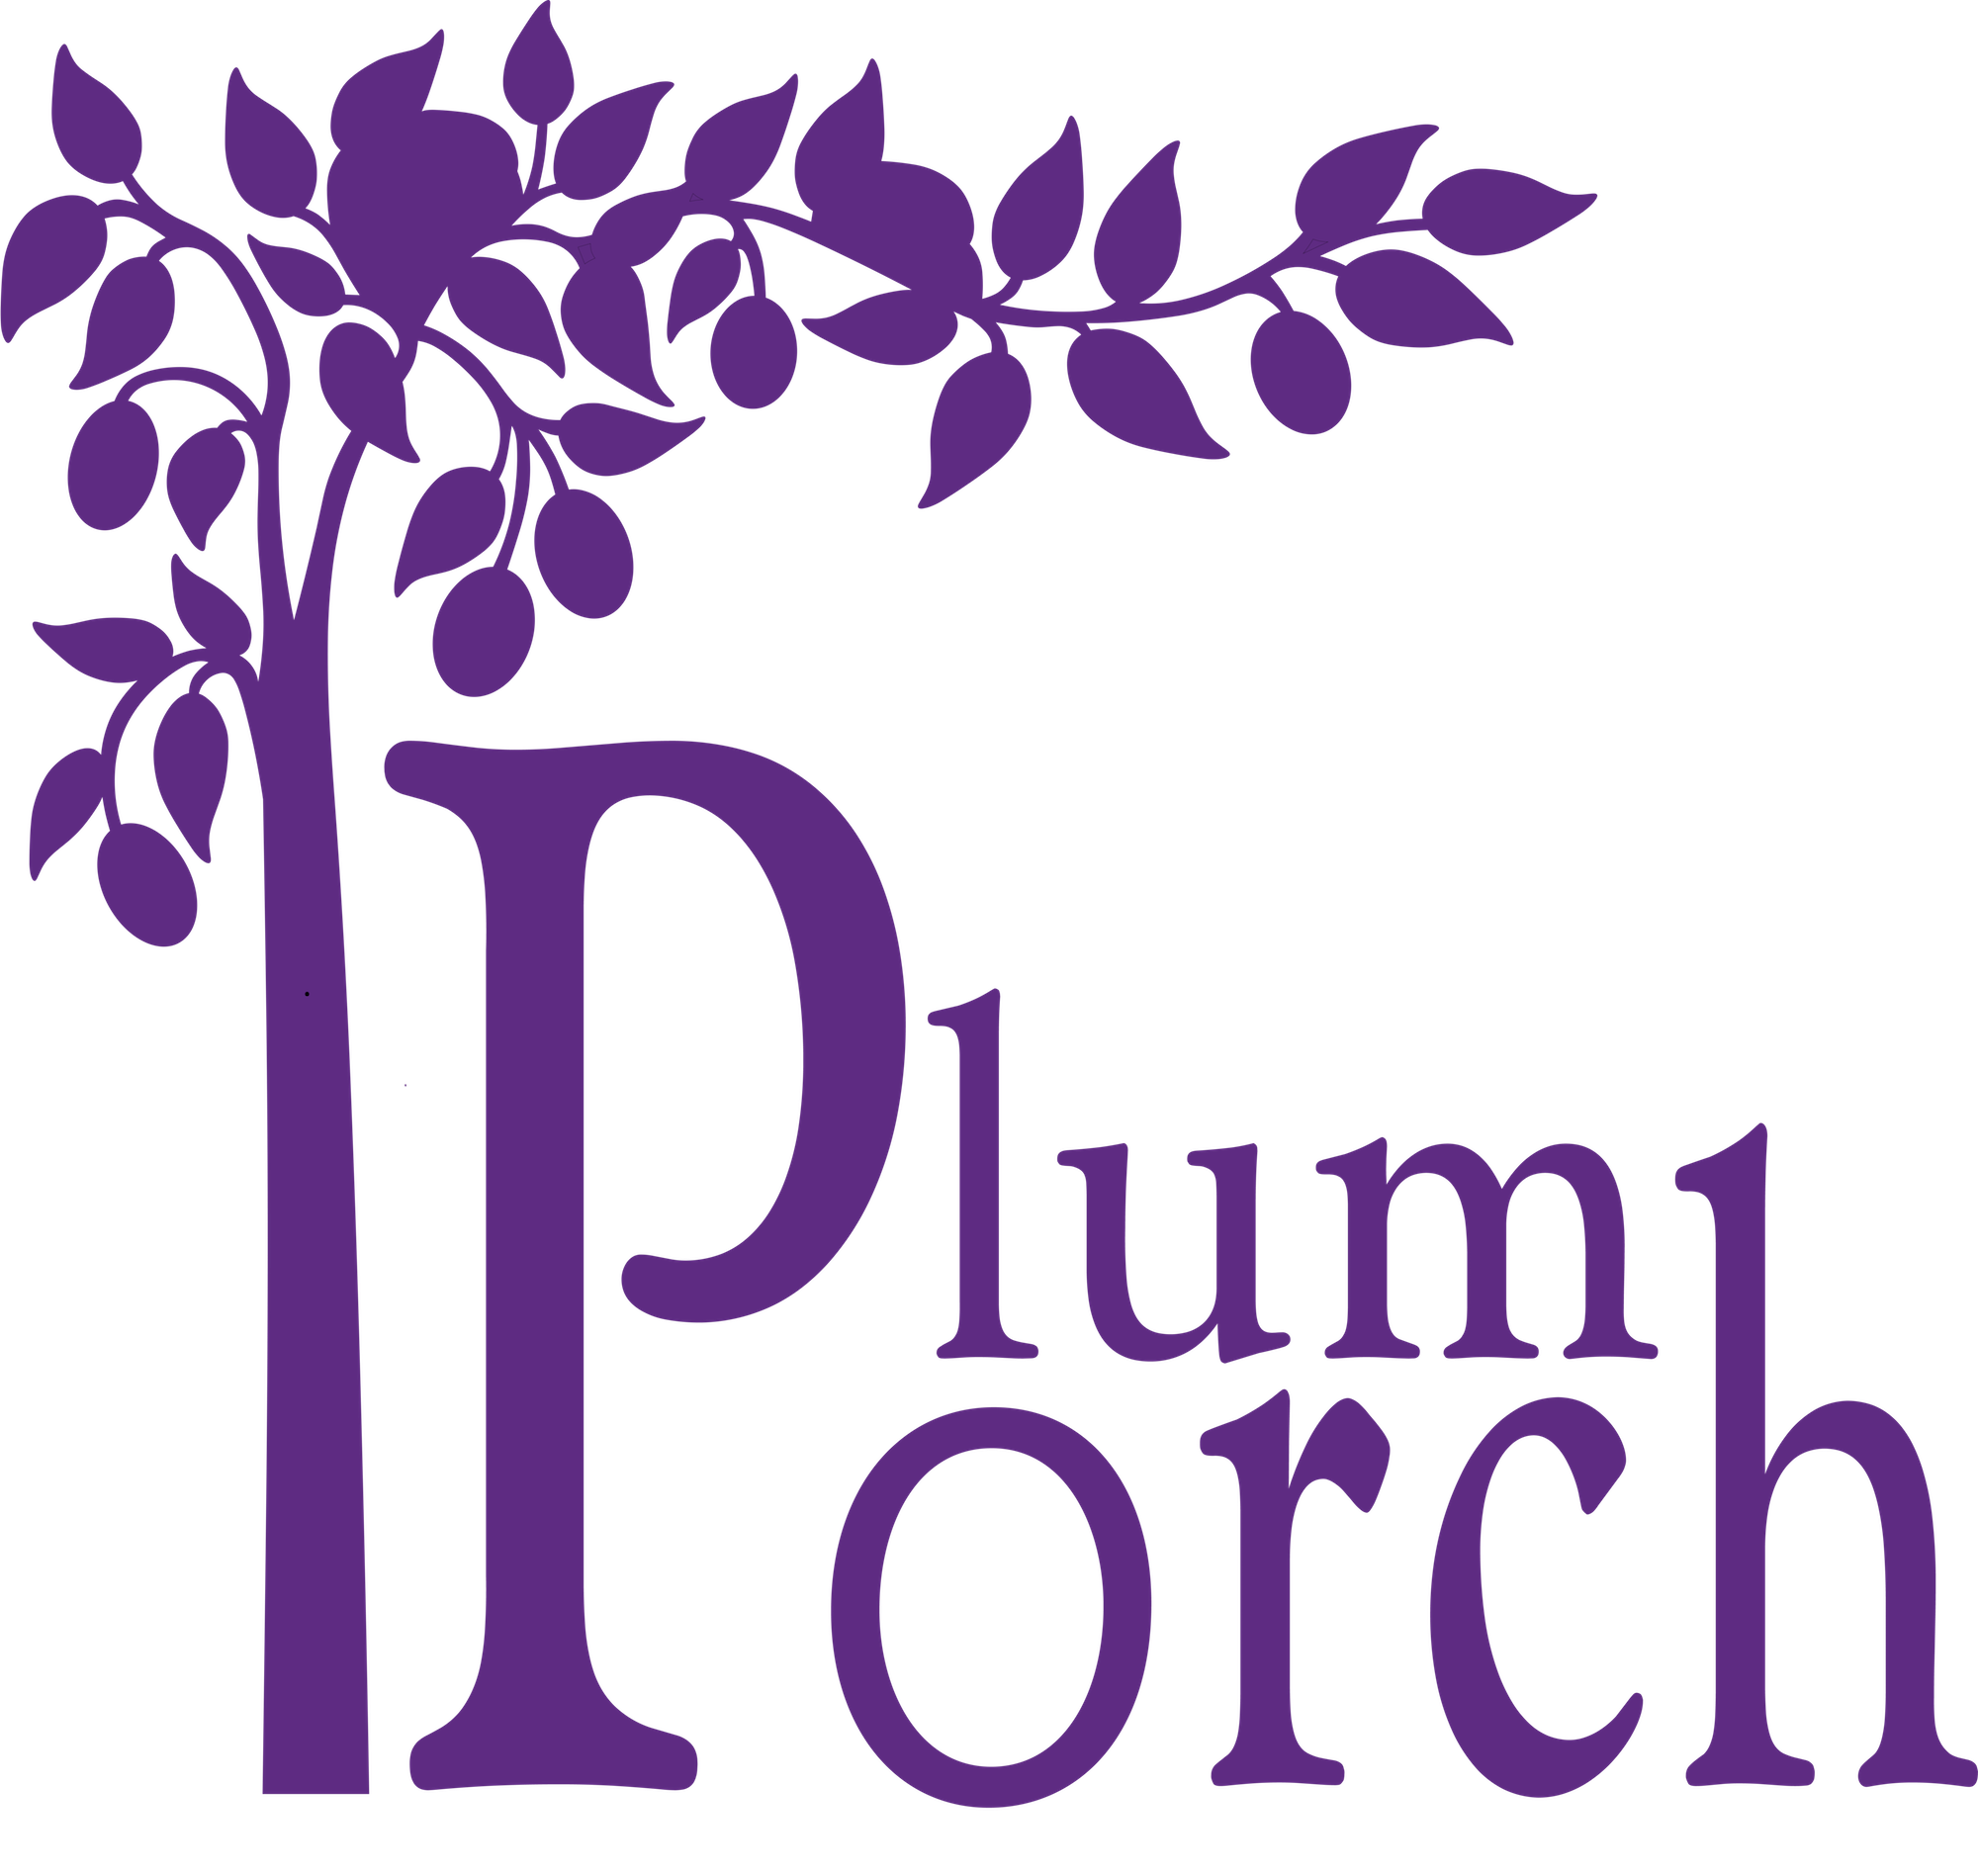 Work at Plum Porch